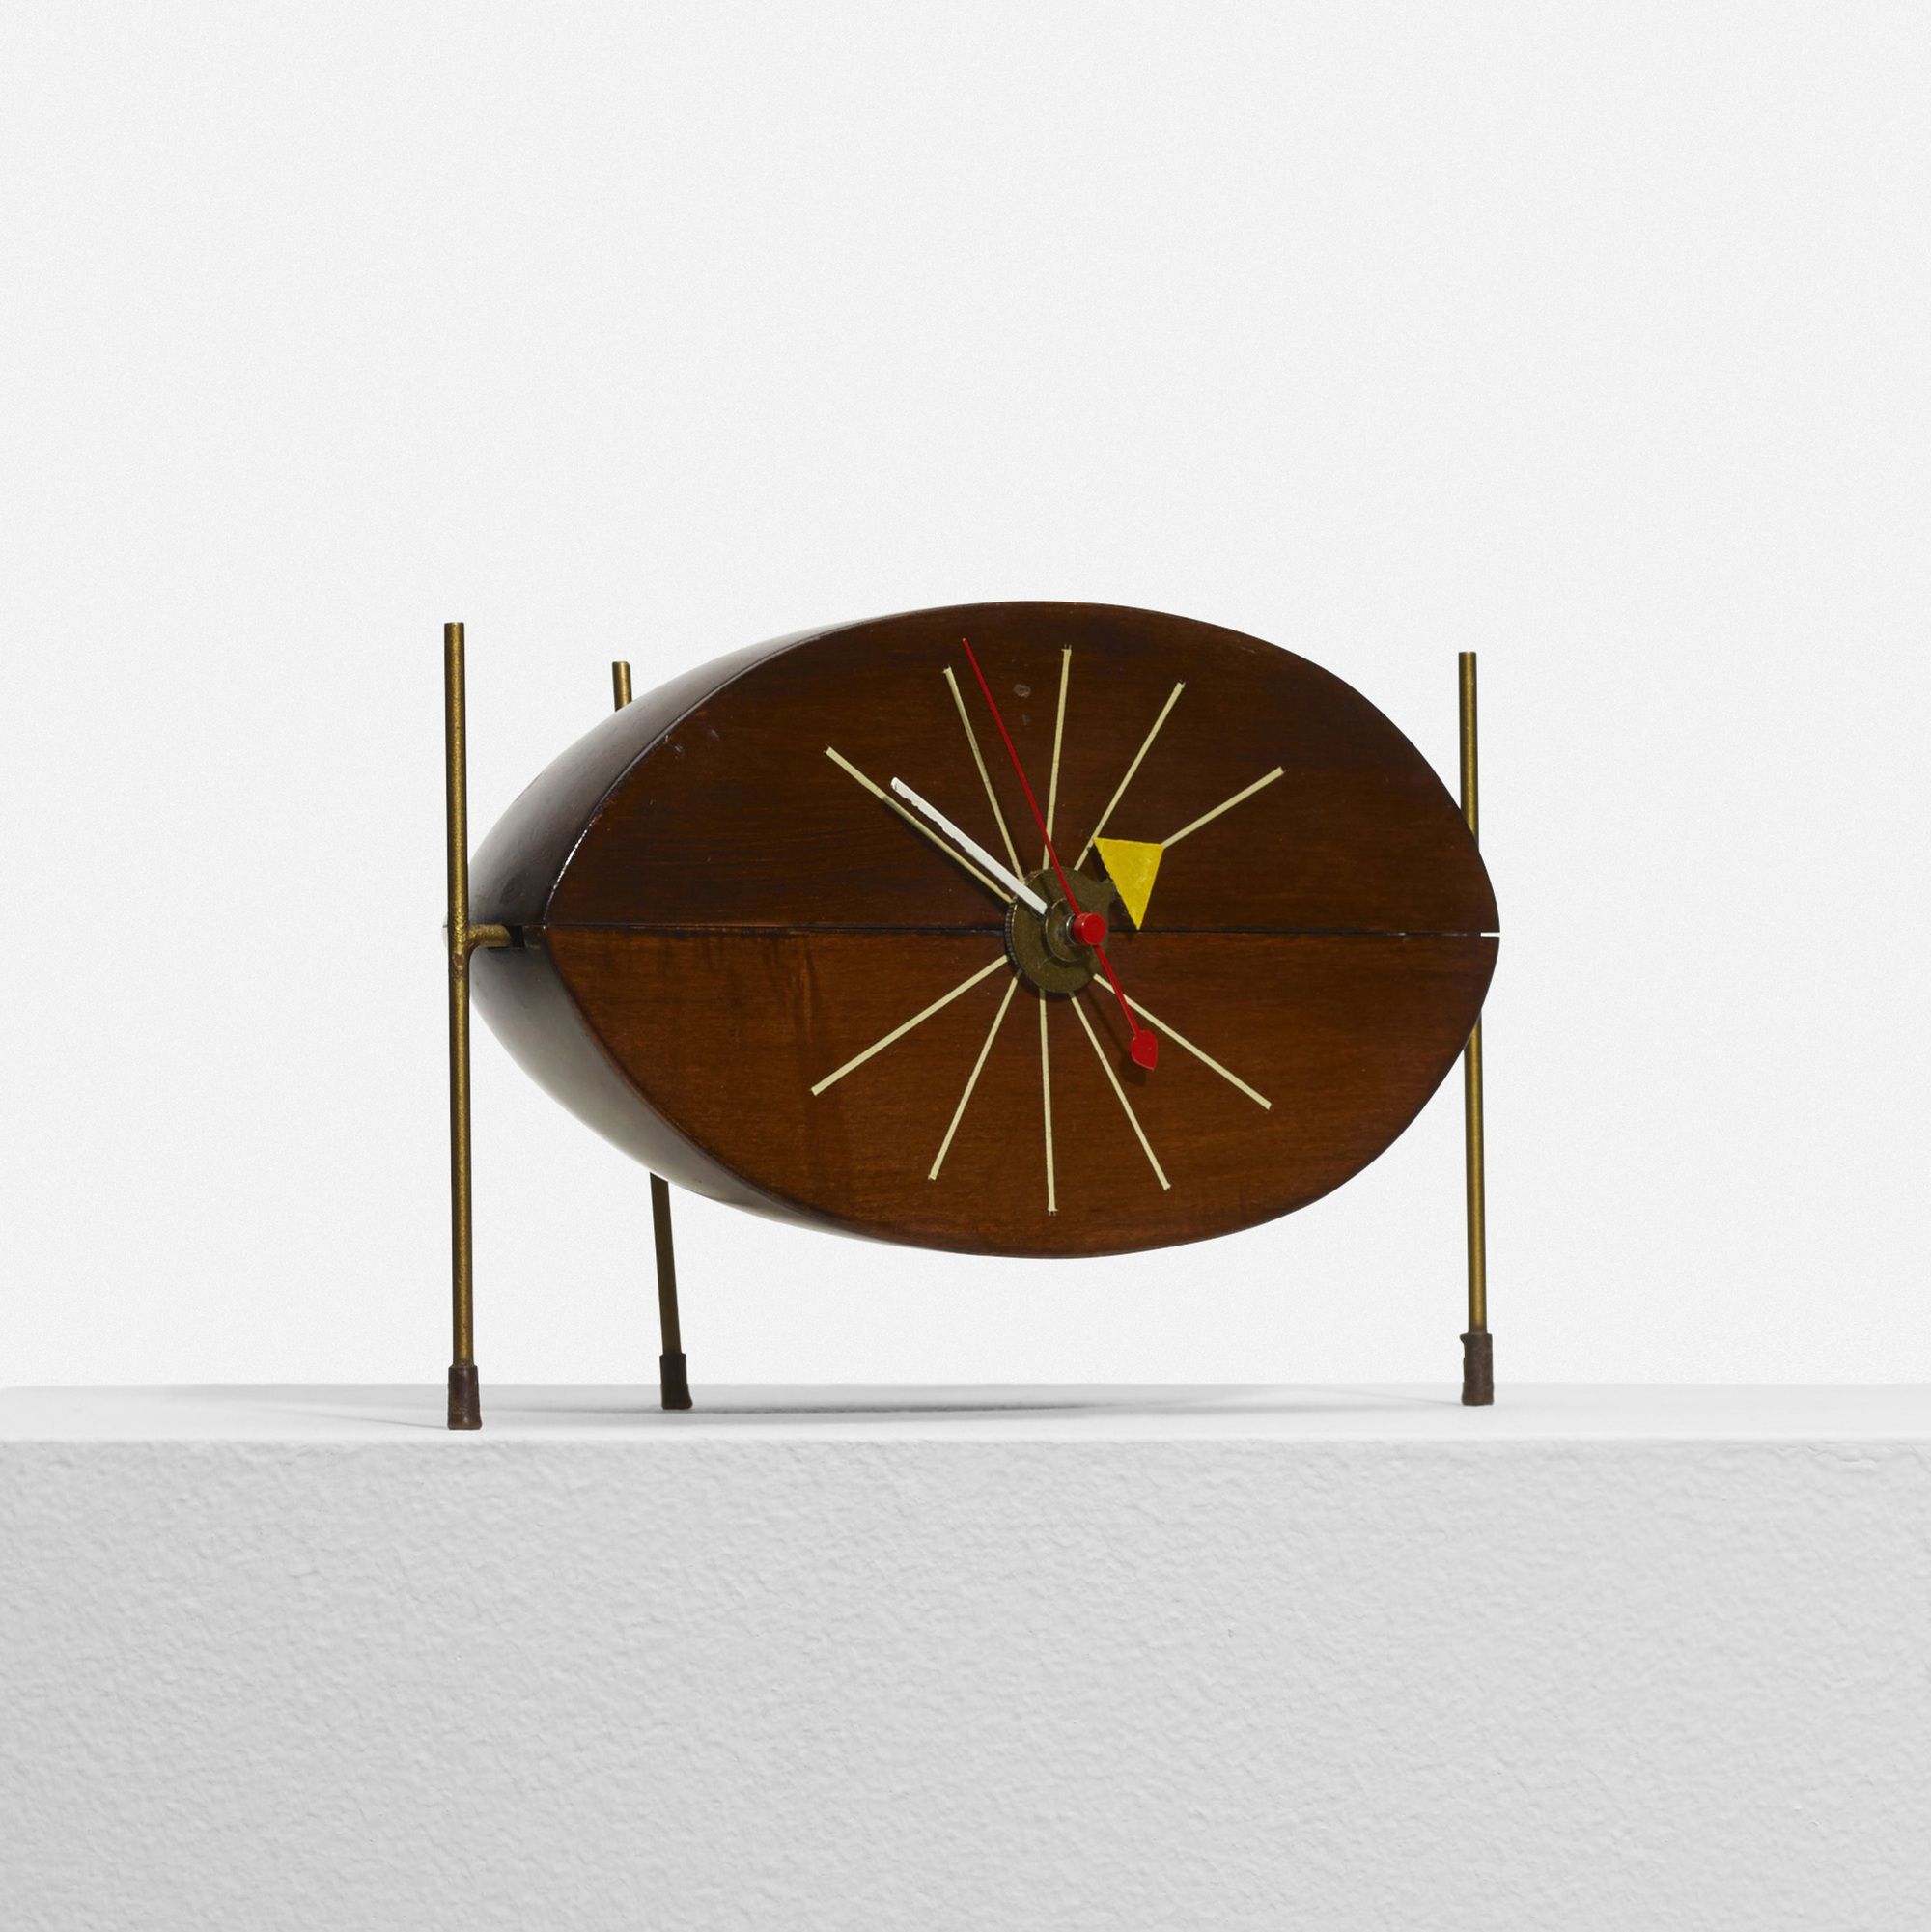 340: George Nelson & Associates / Watermelon table clock, model 2219D (2 of 4)